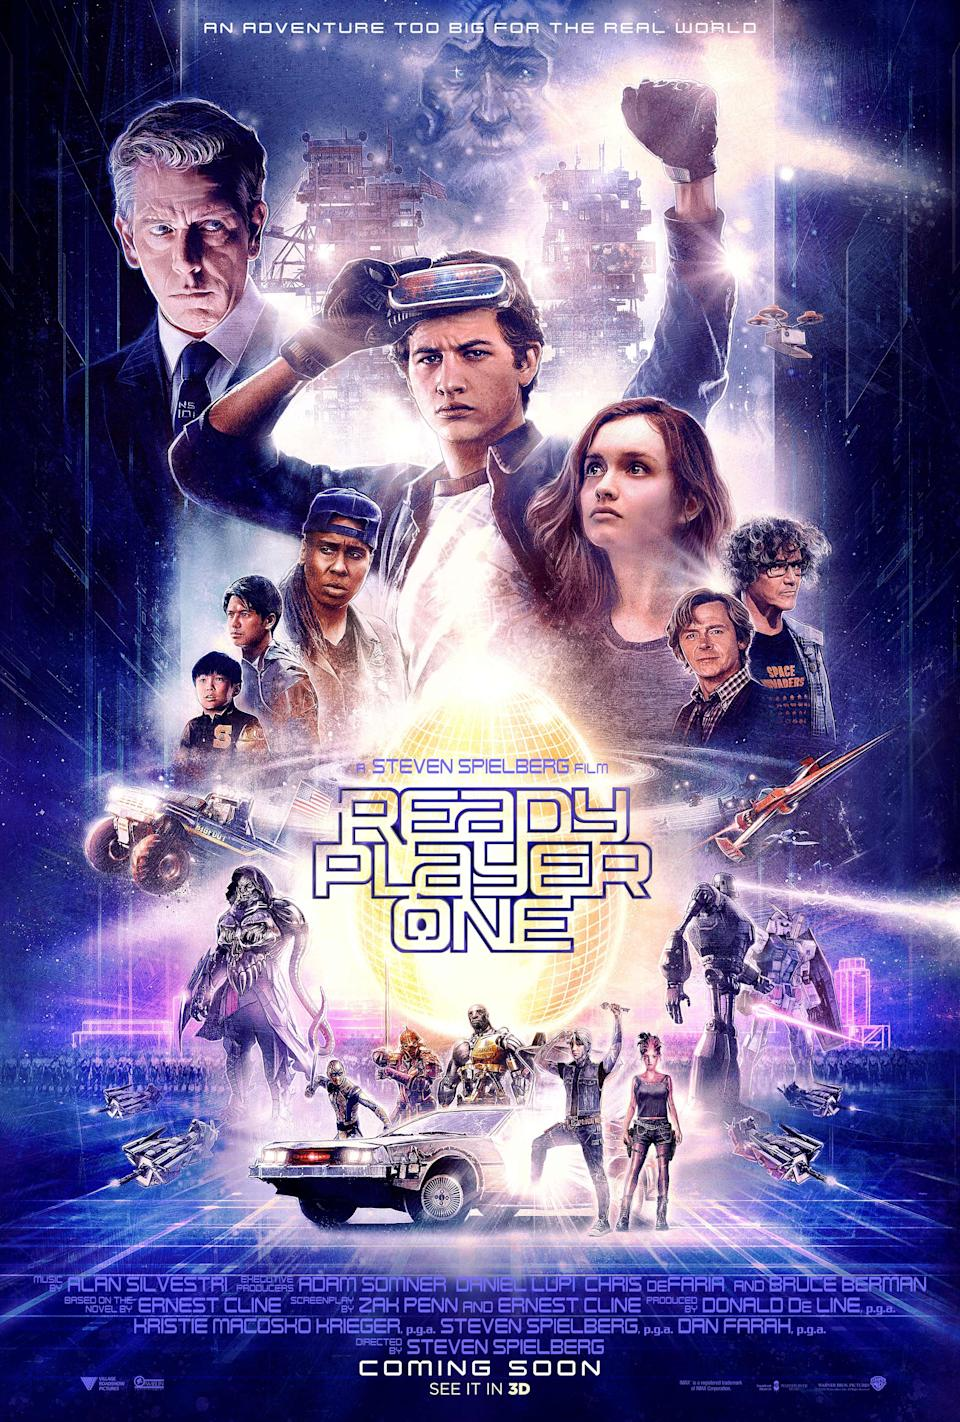 <p>Ready Player One is released on 30 March in the UK. </p>